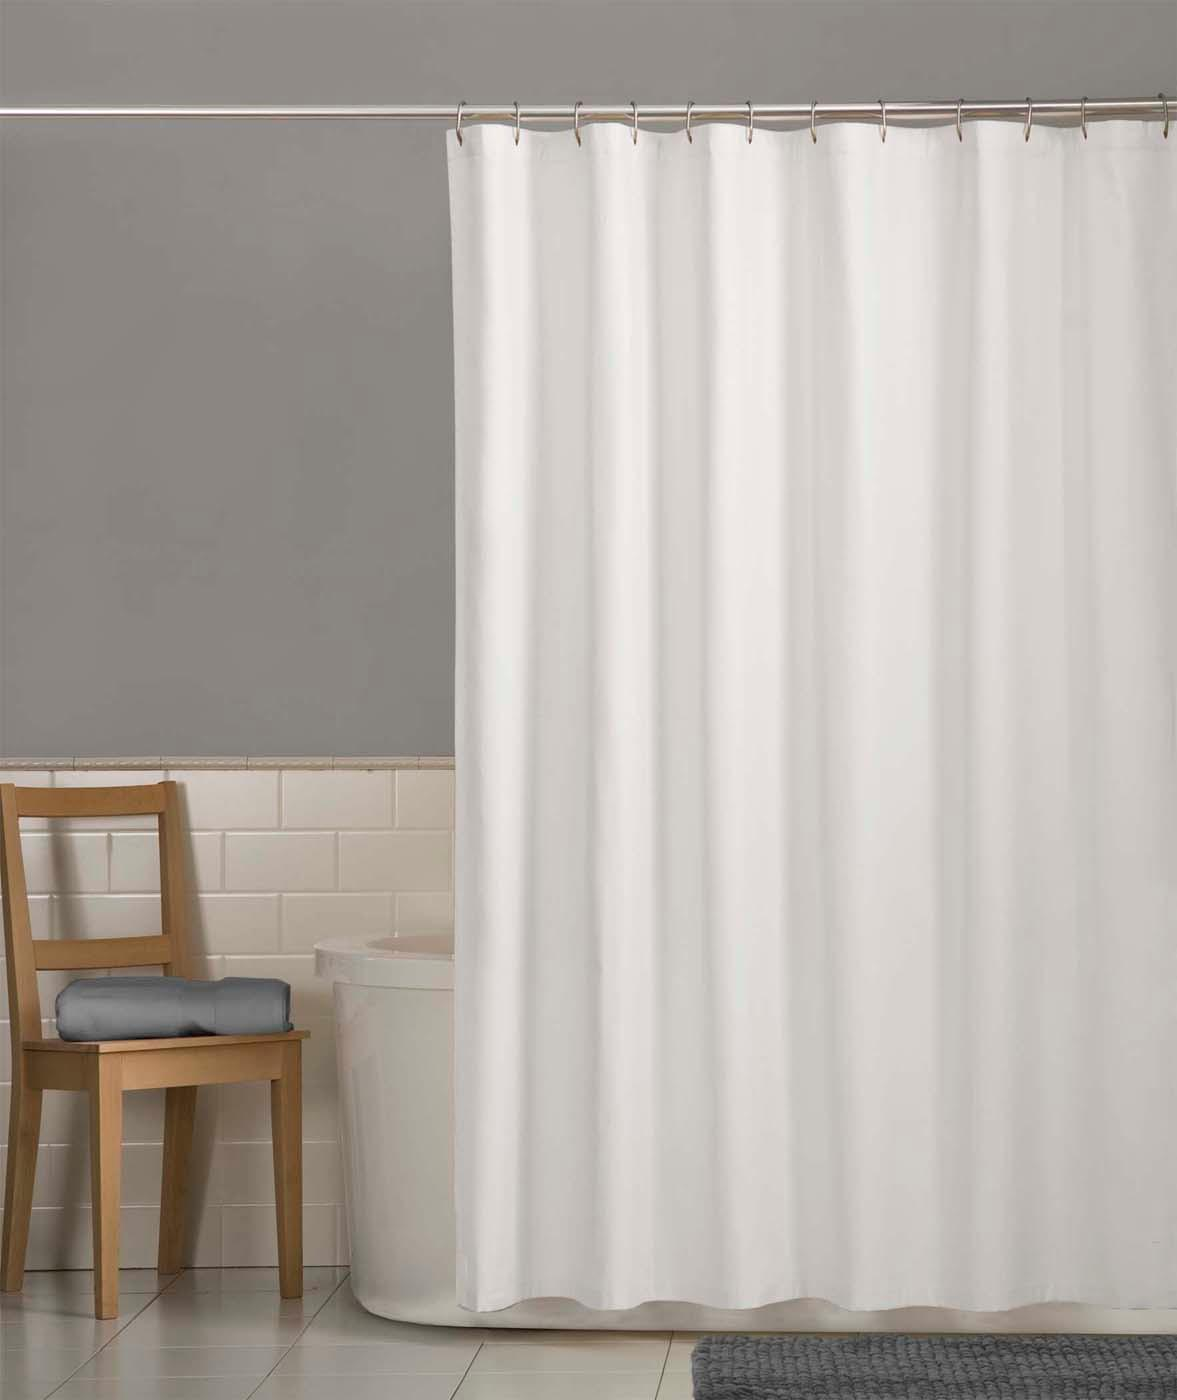 maytex water repellent fabric shower curtain. Black Bedroom Furniture Sets. Home Design Ideas